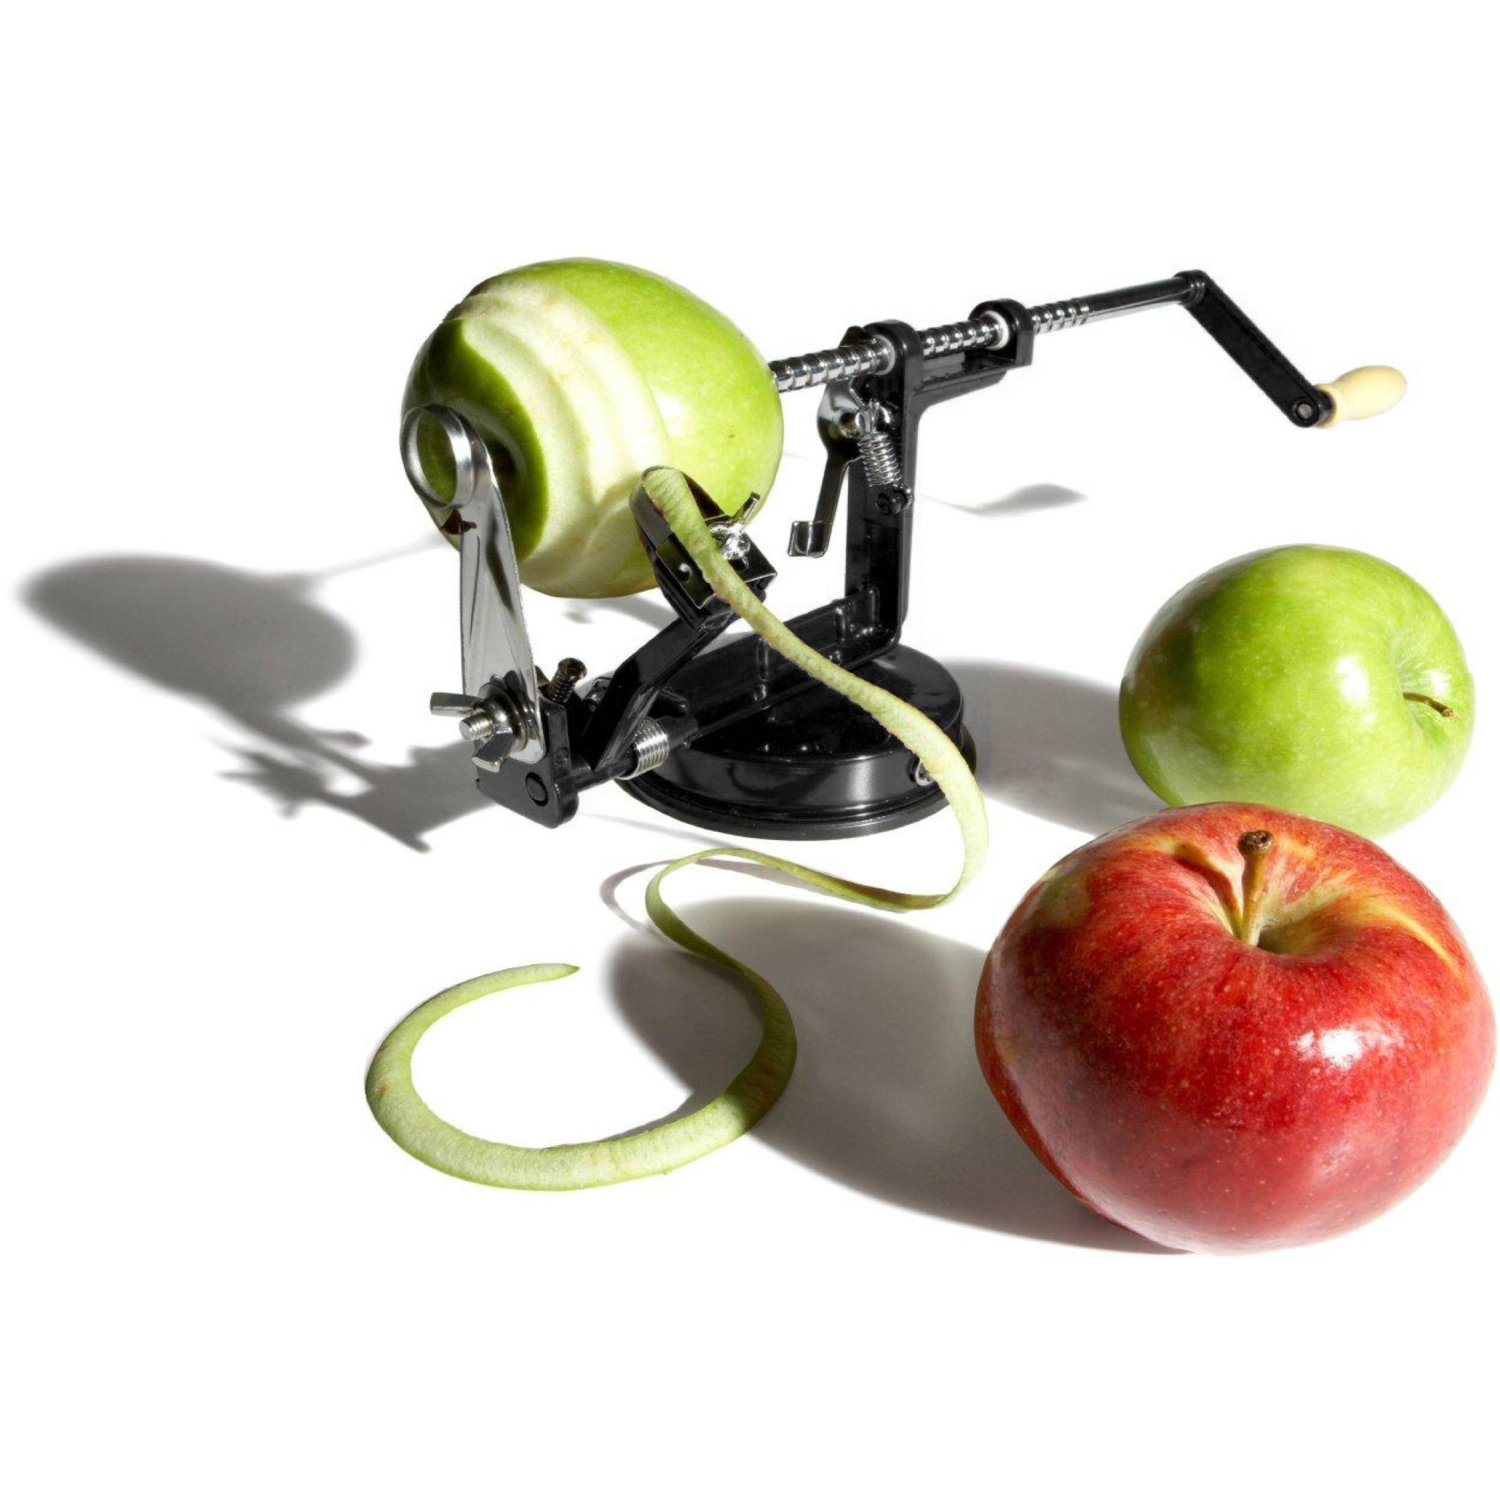 Amazon: Apple And Potato Peeler, Corer, and Slicer Only $12.99!